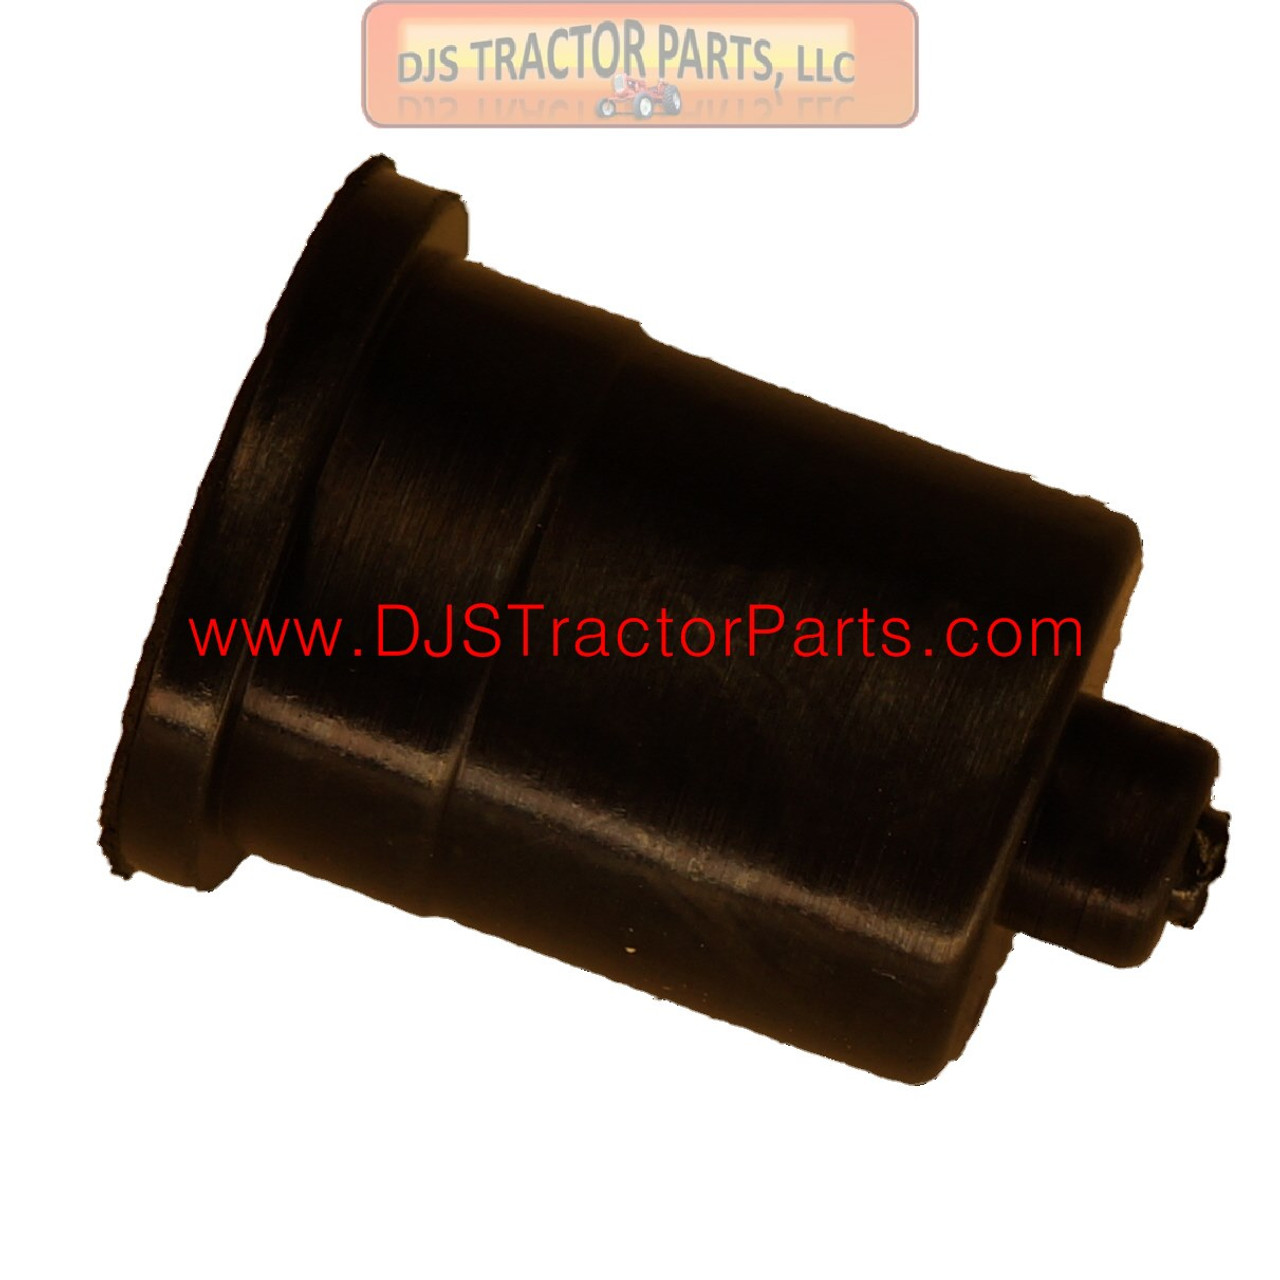 small resolution of electrical outlet socket boot 1 wire style ab 2285d djs tractor parts llc